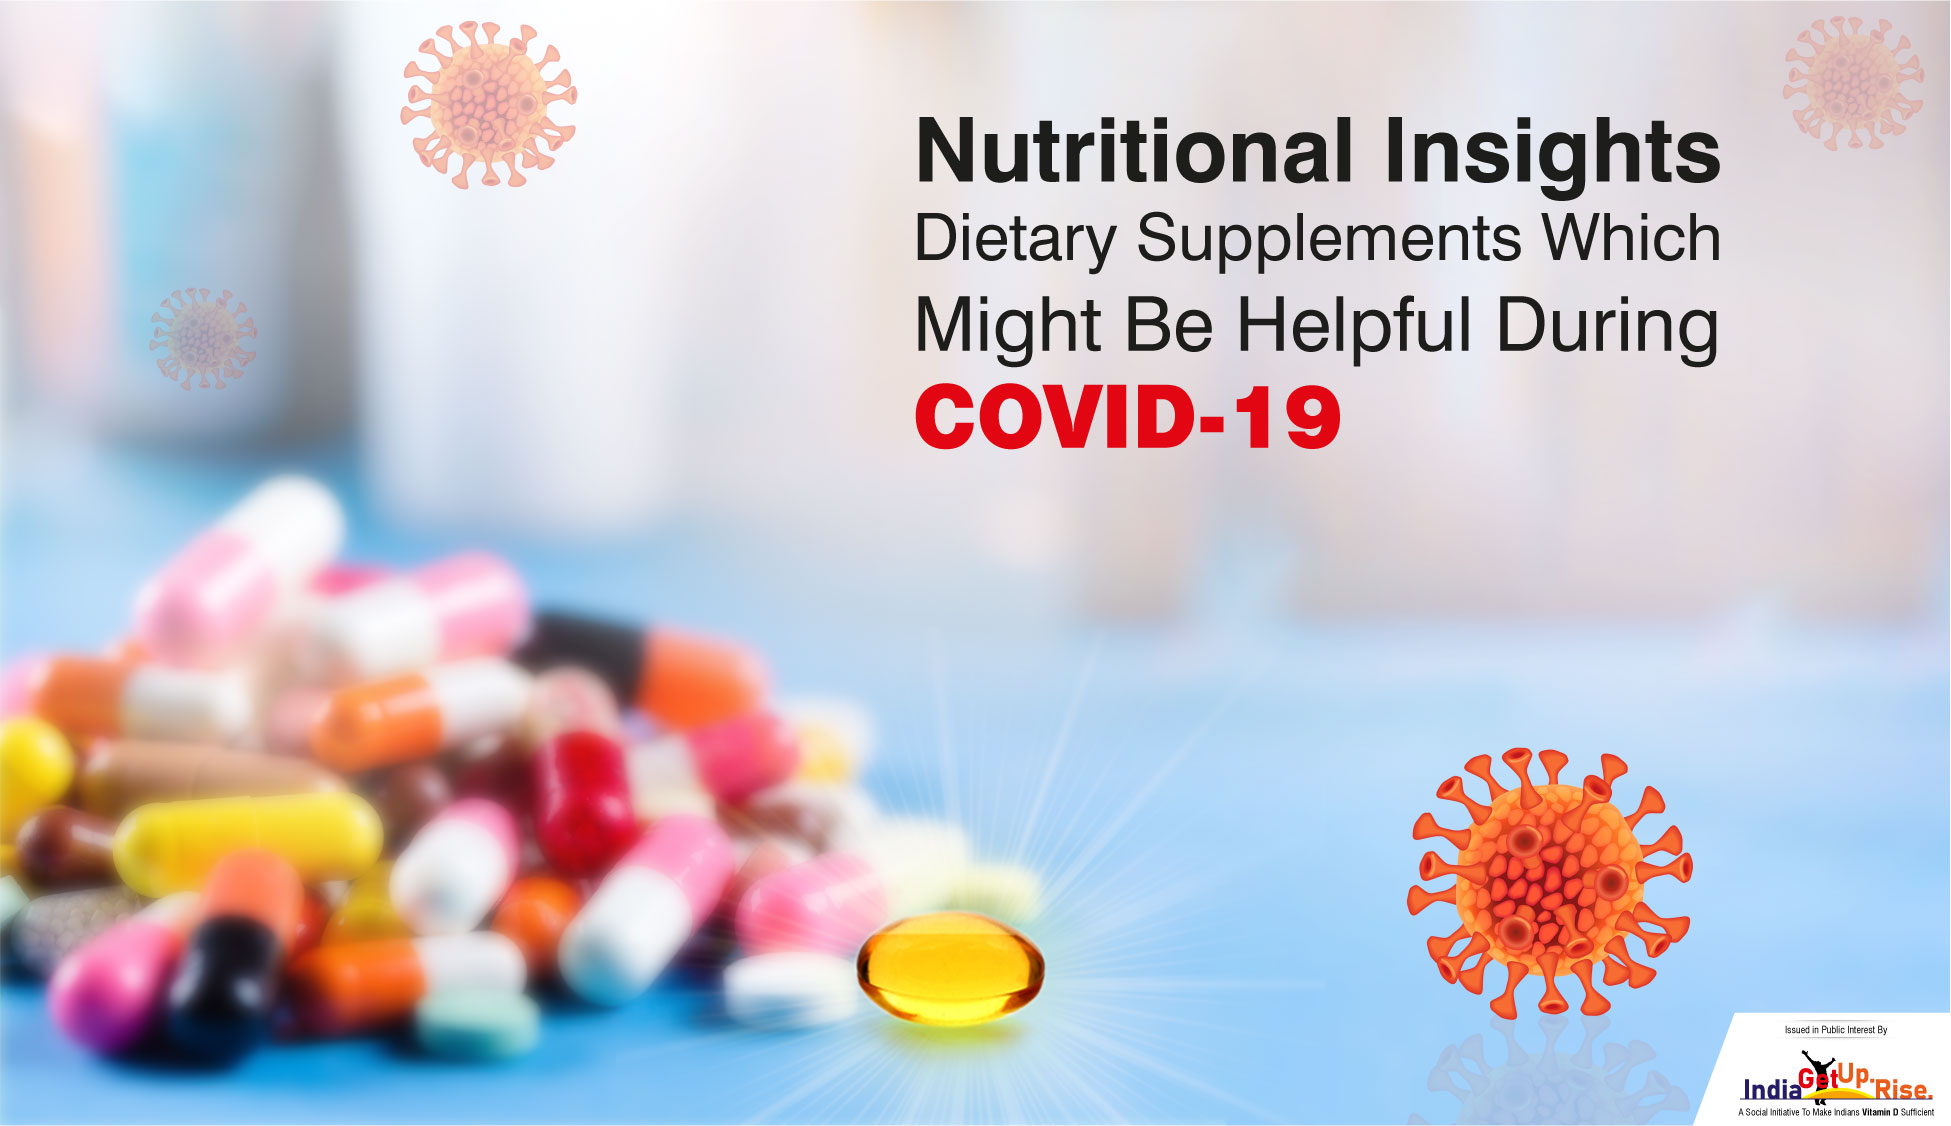 Covid 19 Nutritional Supplements